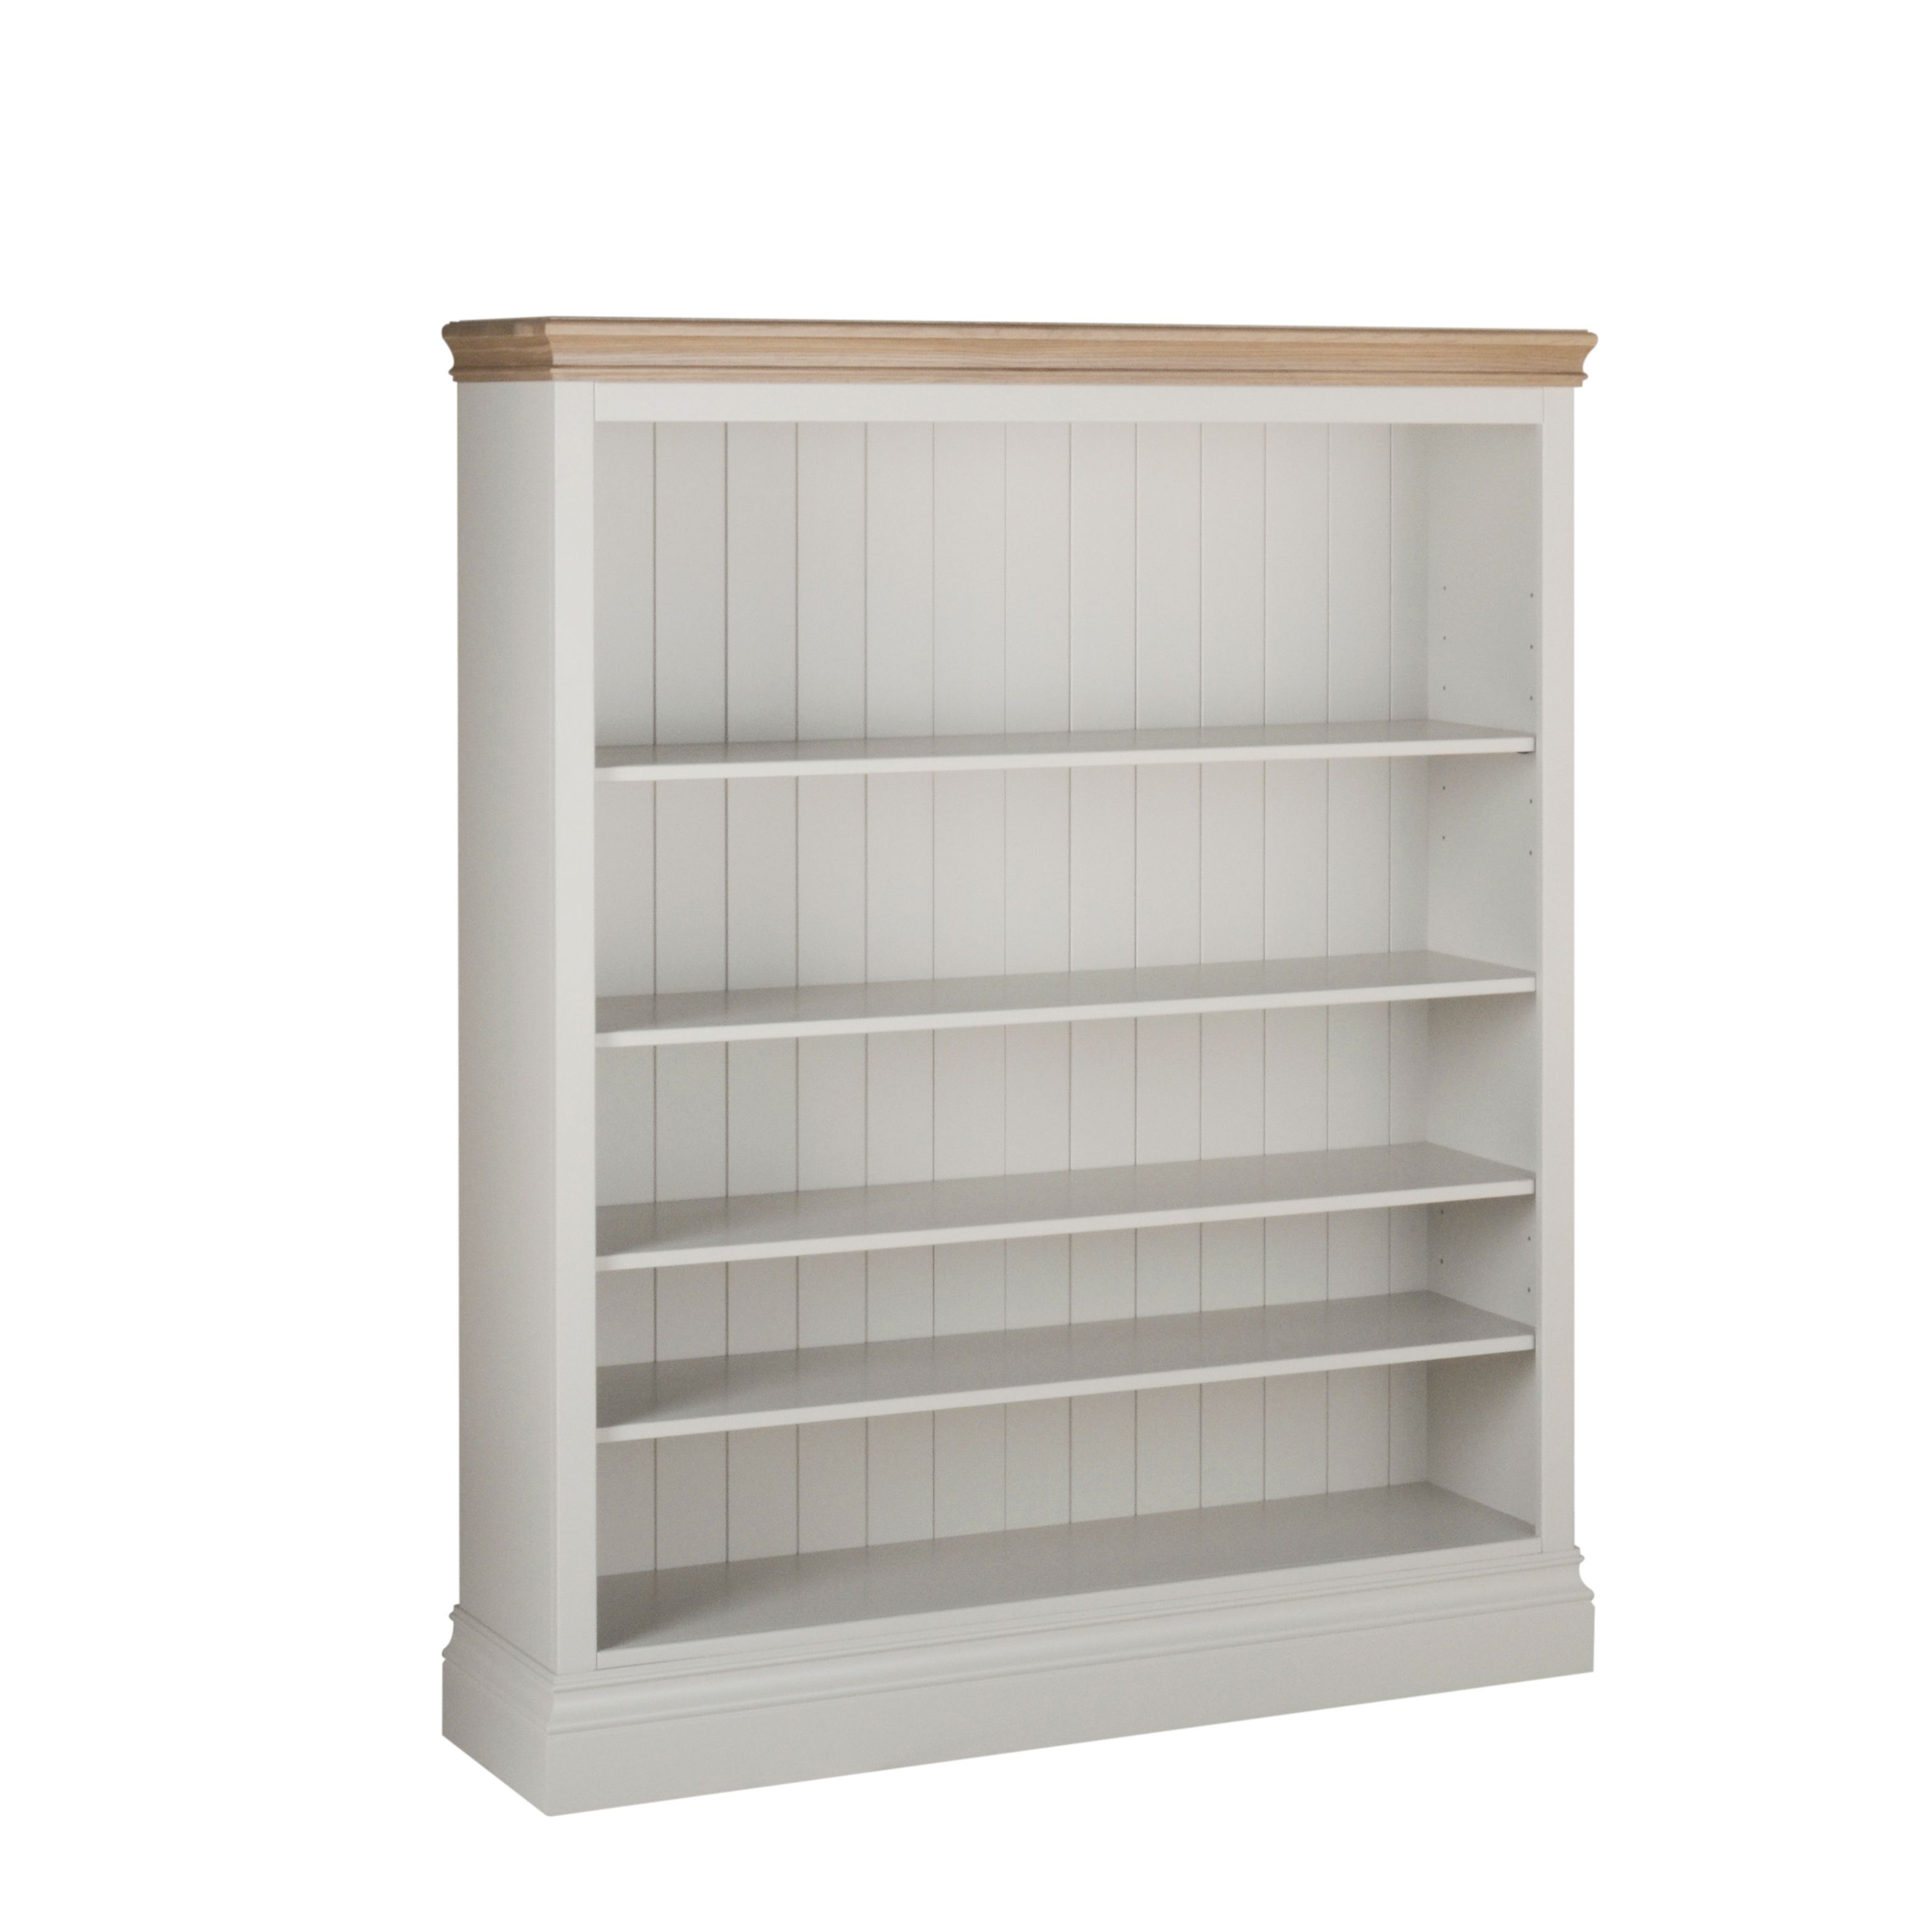 Lundy 5 Foot Wide Bookcase LK80